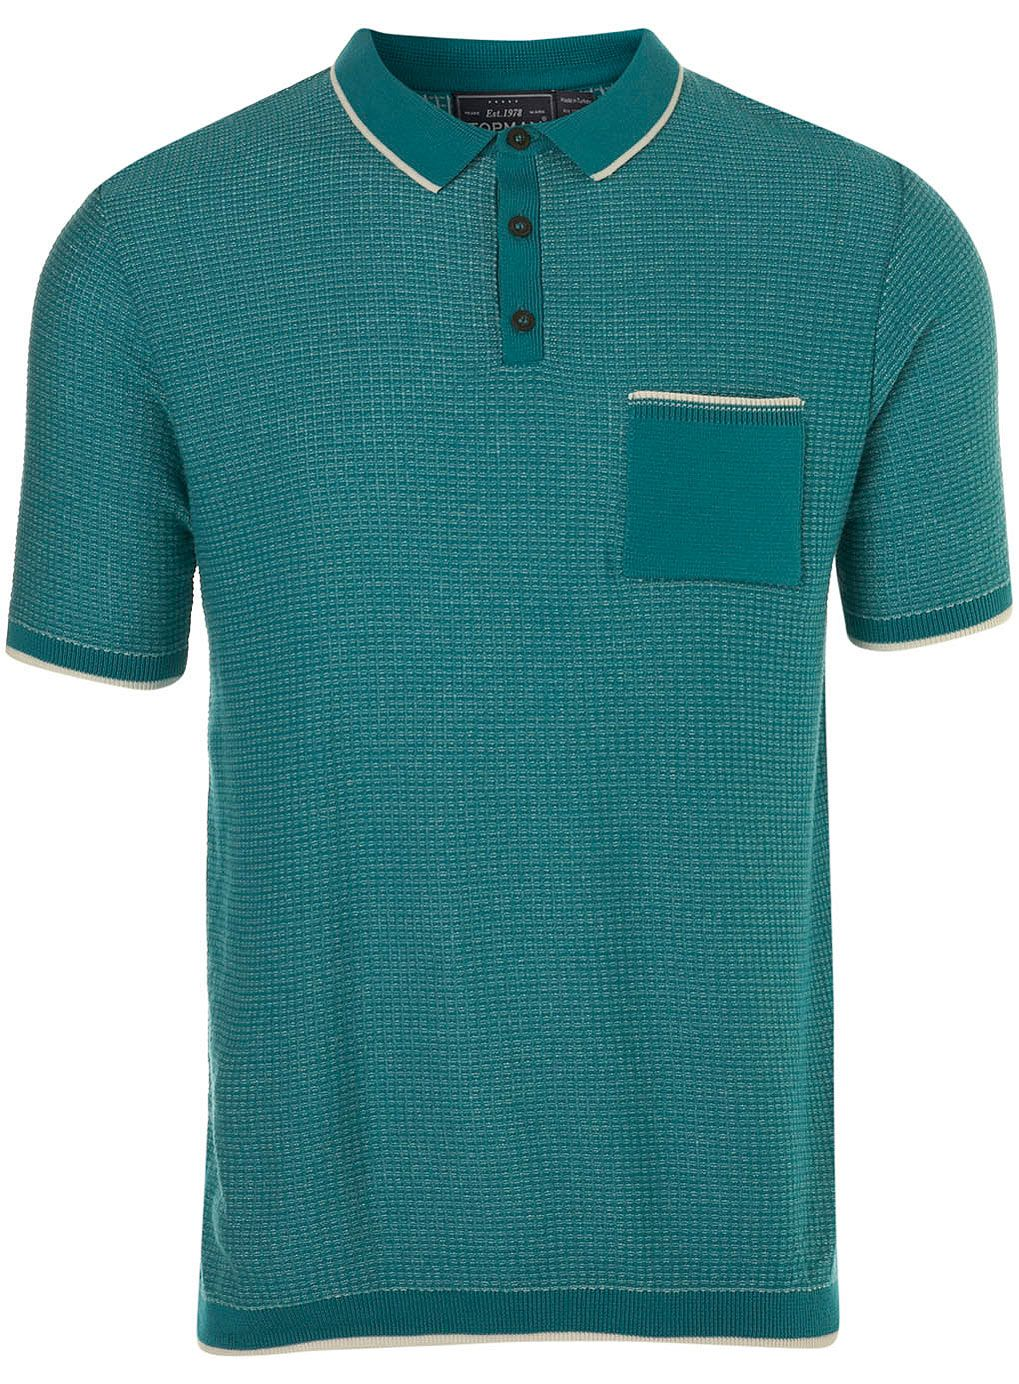 A ShirtTopman For Shirts Polo Knitted T Mint sCQhrdt